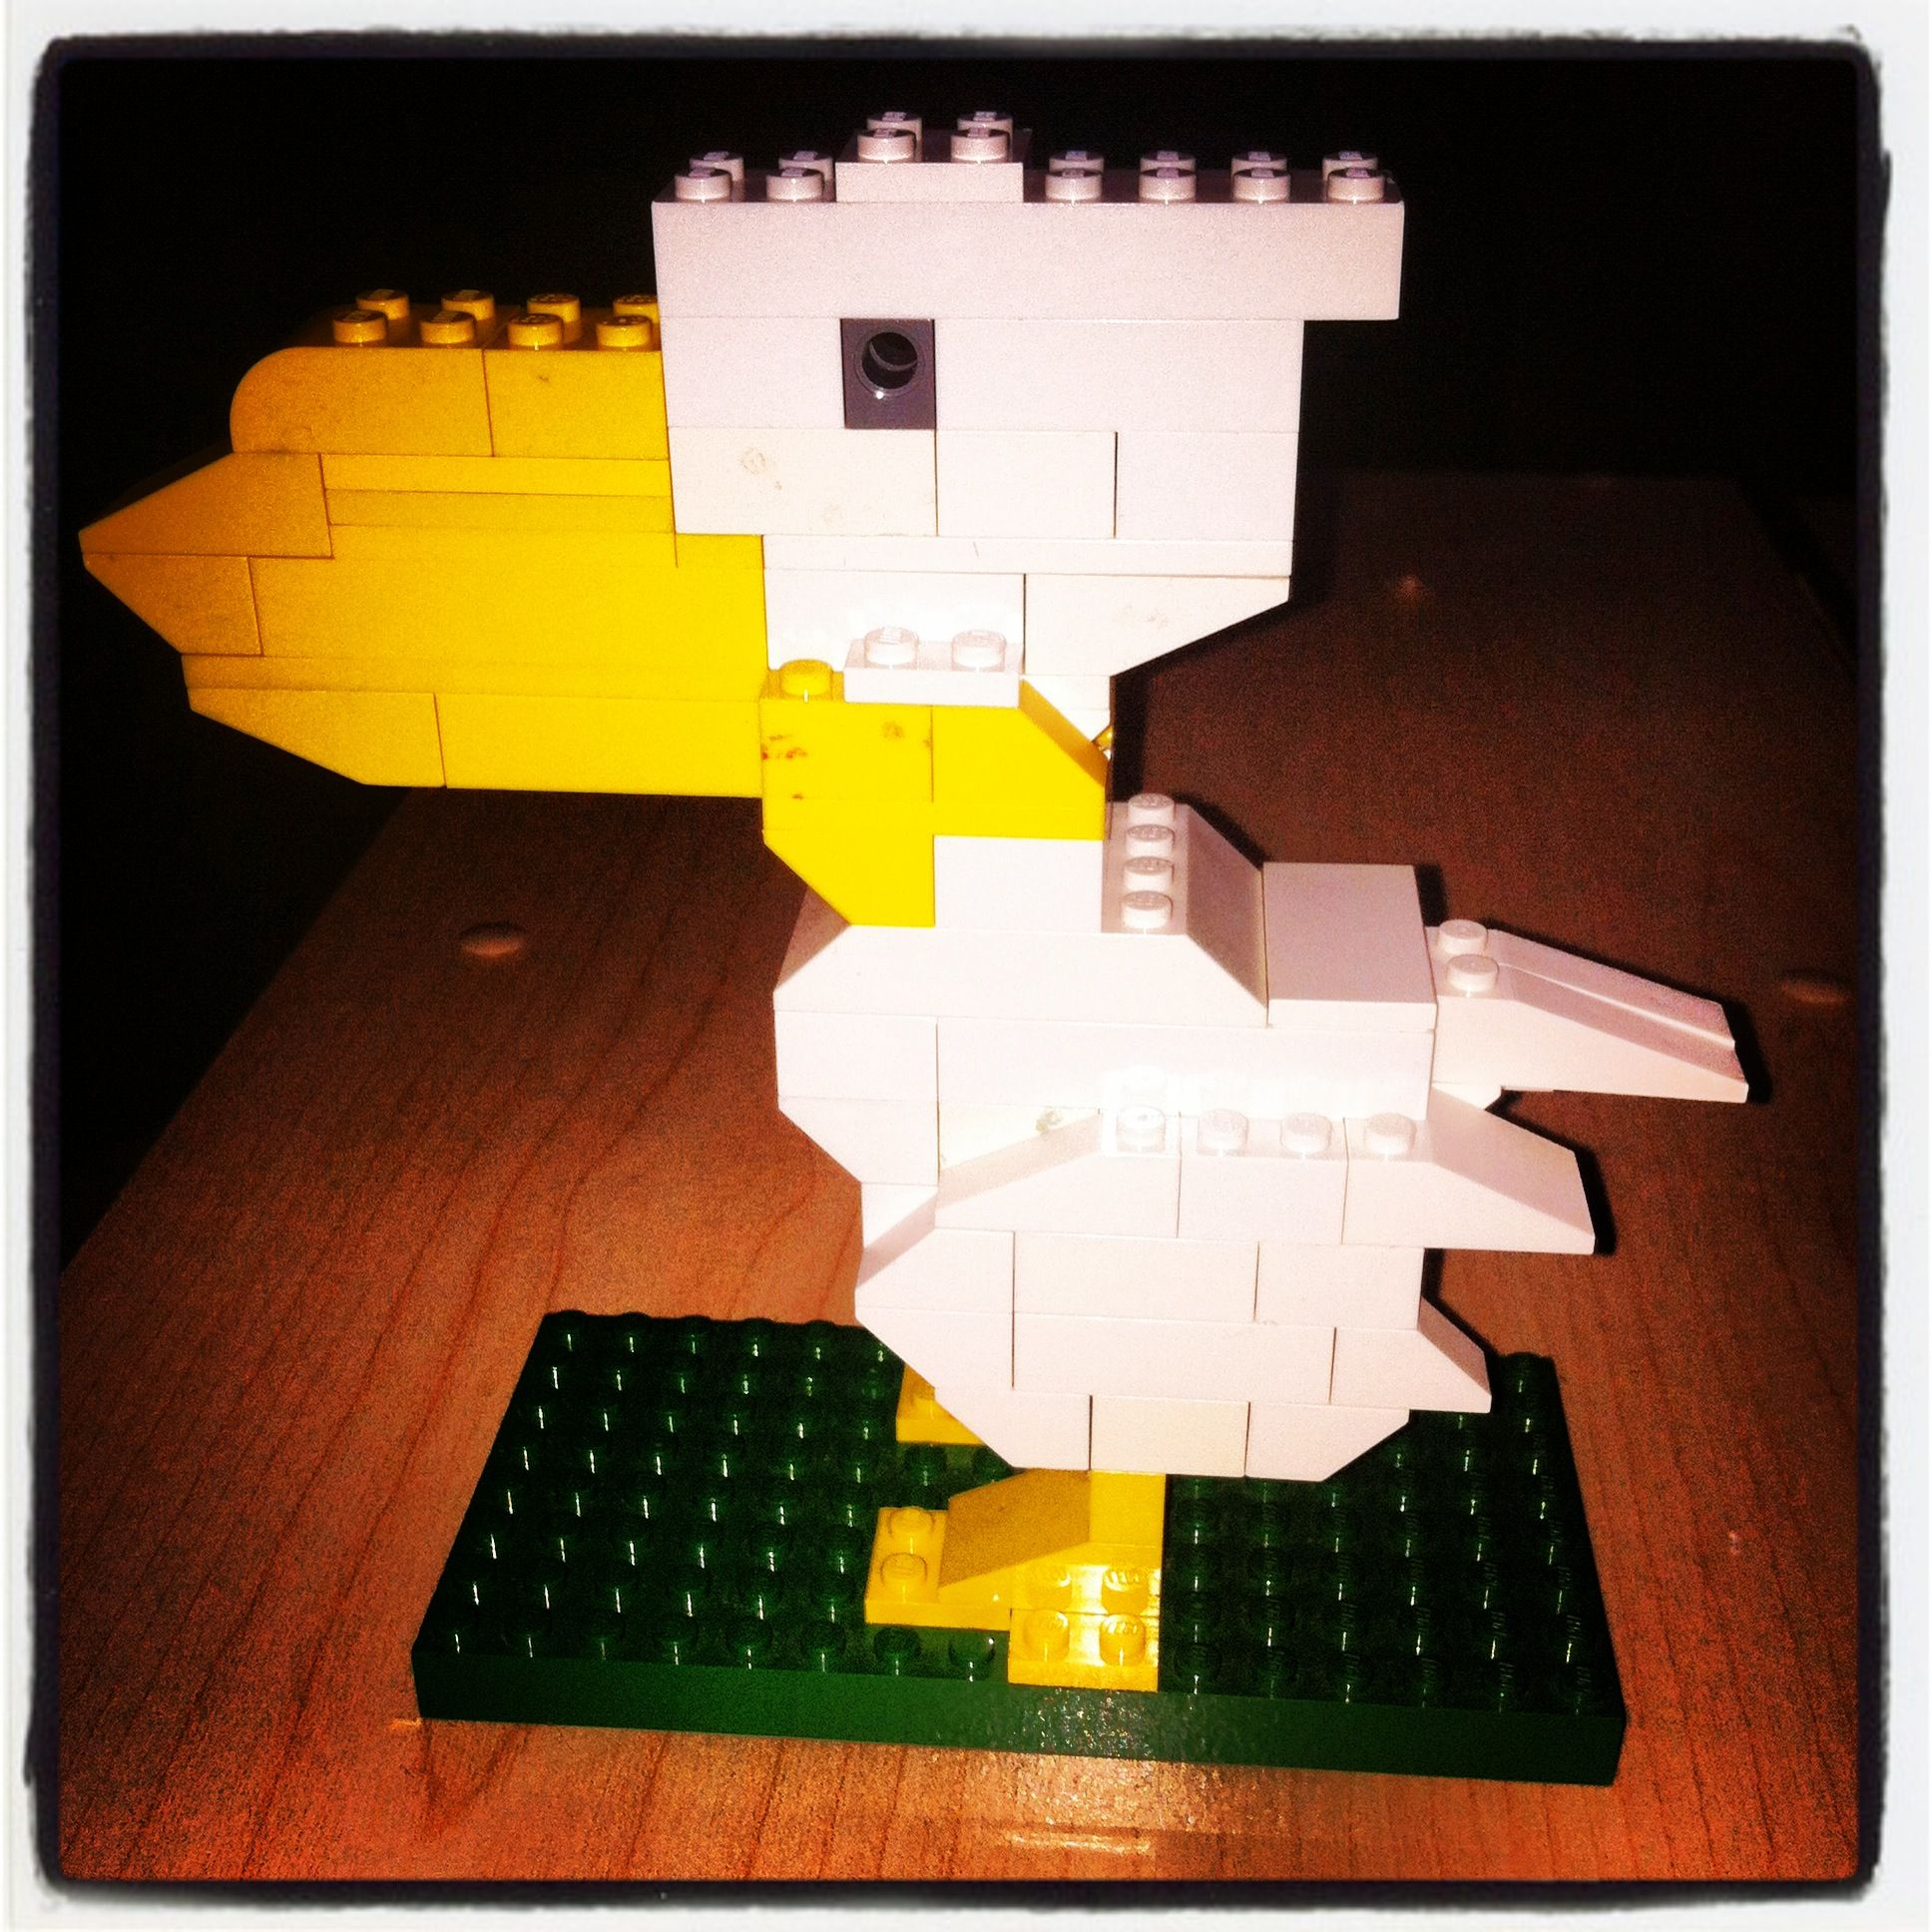 My son built a Lego Pelican for a school project